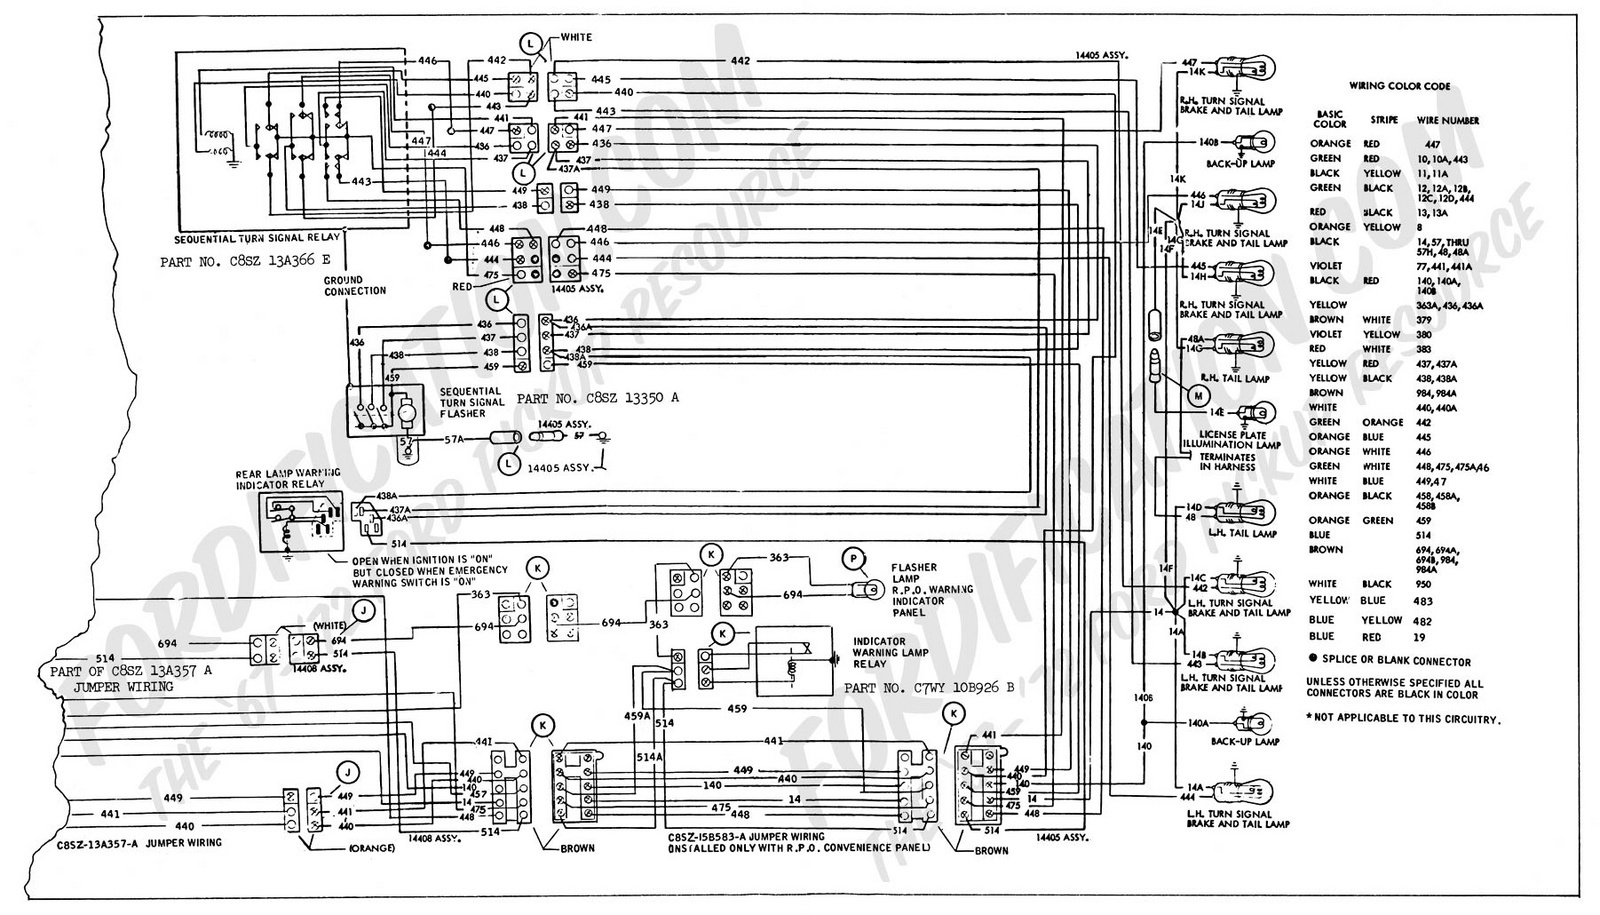 1986 Thunderbird Oil Pressure Wiring Diagram 44 2004 Ford 1600x1200 Questions 68 Pan Wont Come Out 1987